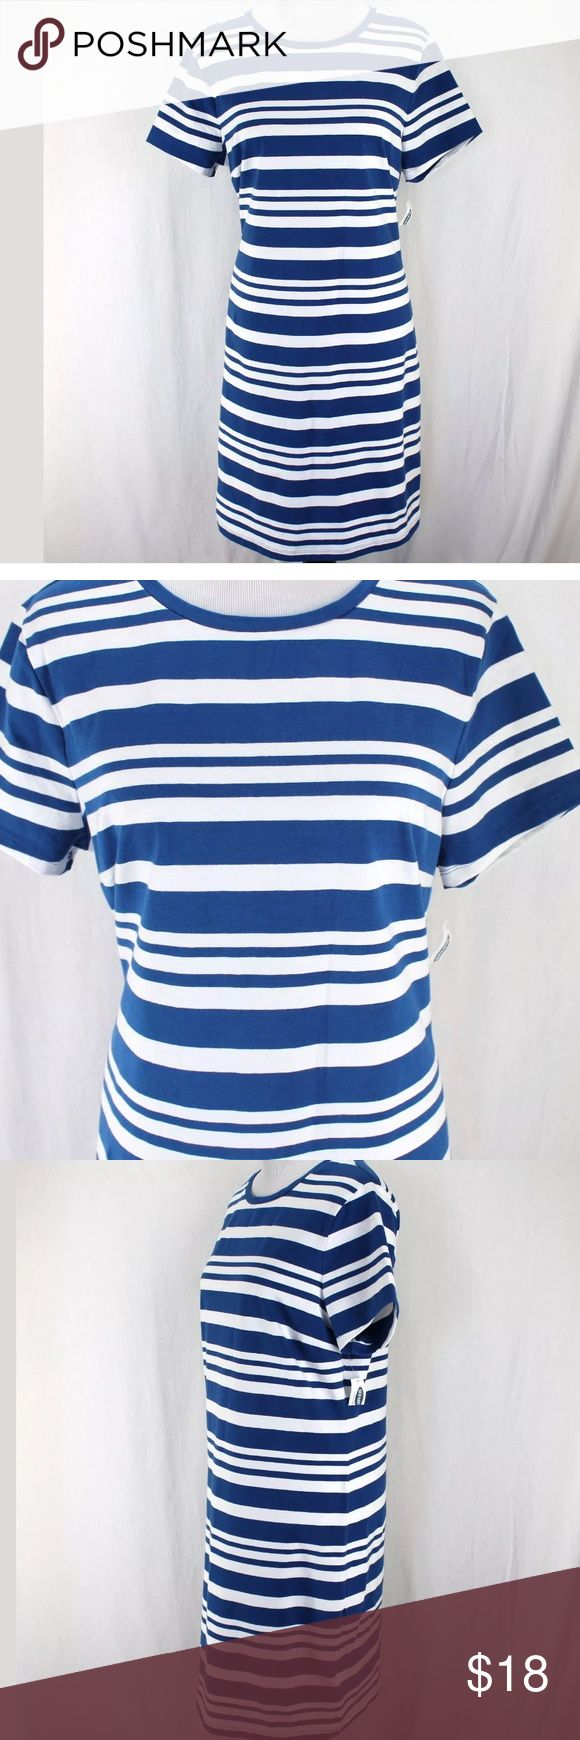 Black t shirt old navy - Old Navy Nautical T Shirt Dress New Blue And White Striped Short Sleeves 93 Cotton